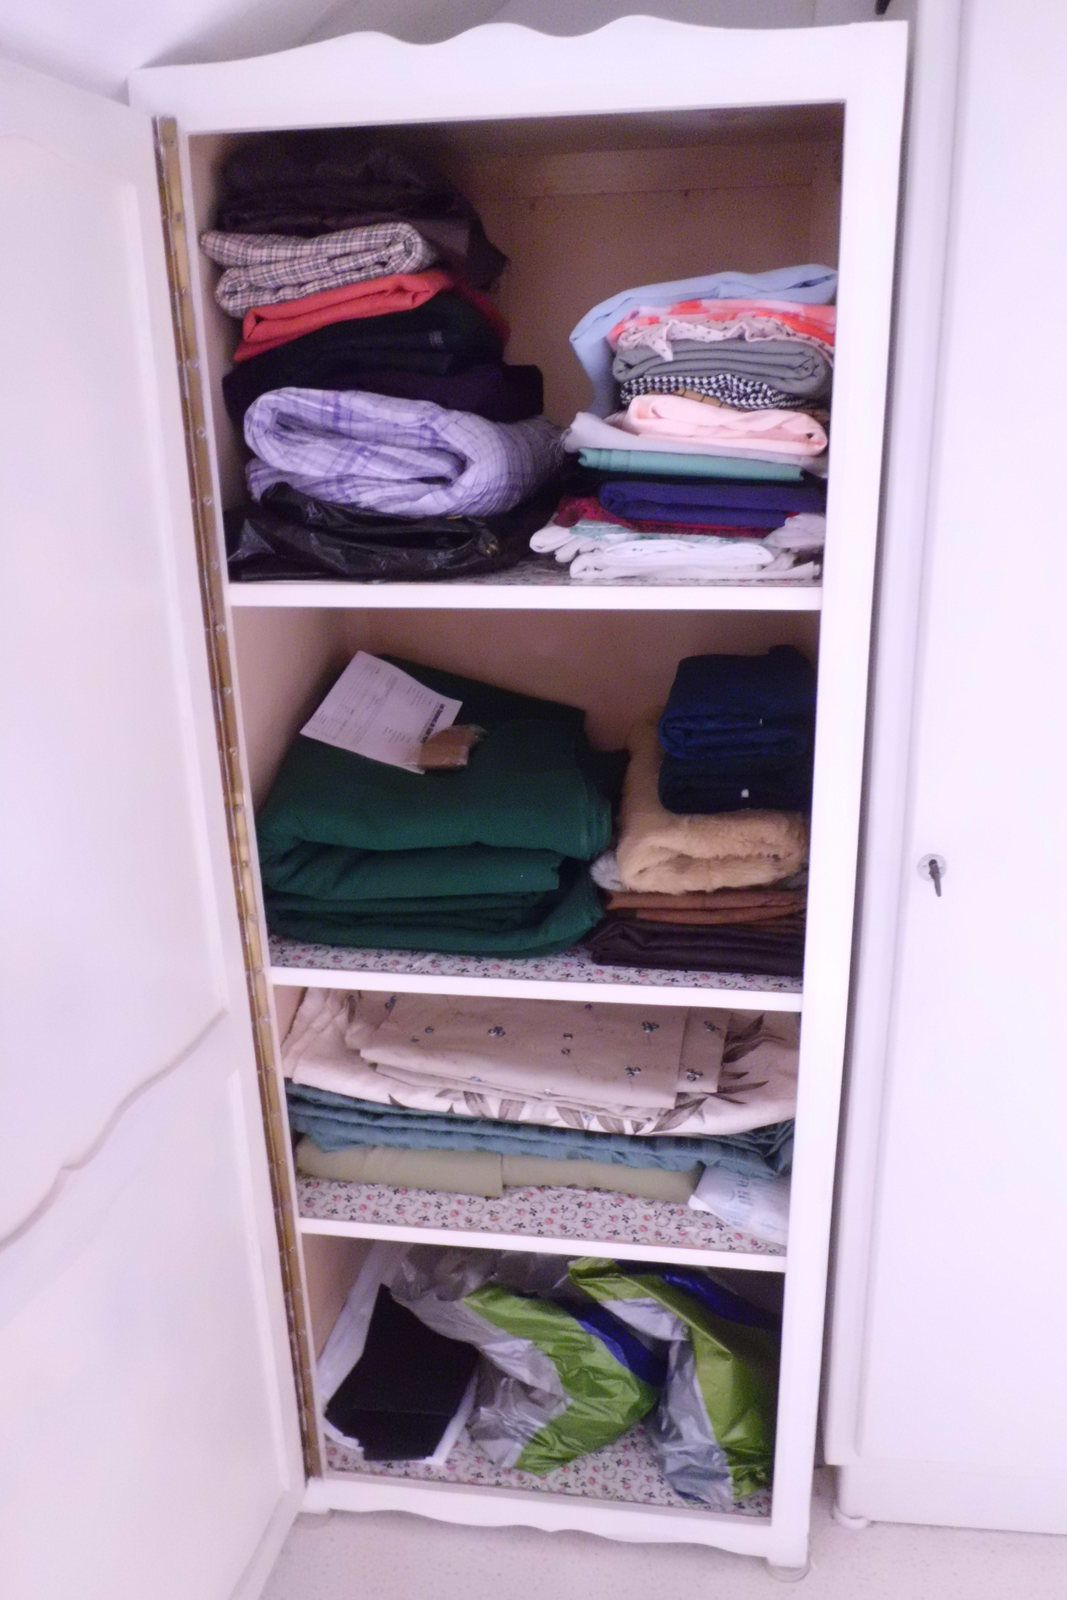 Les tissus en stock! ... Enfin une partie... / Fabrics in stock! ... some of them...